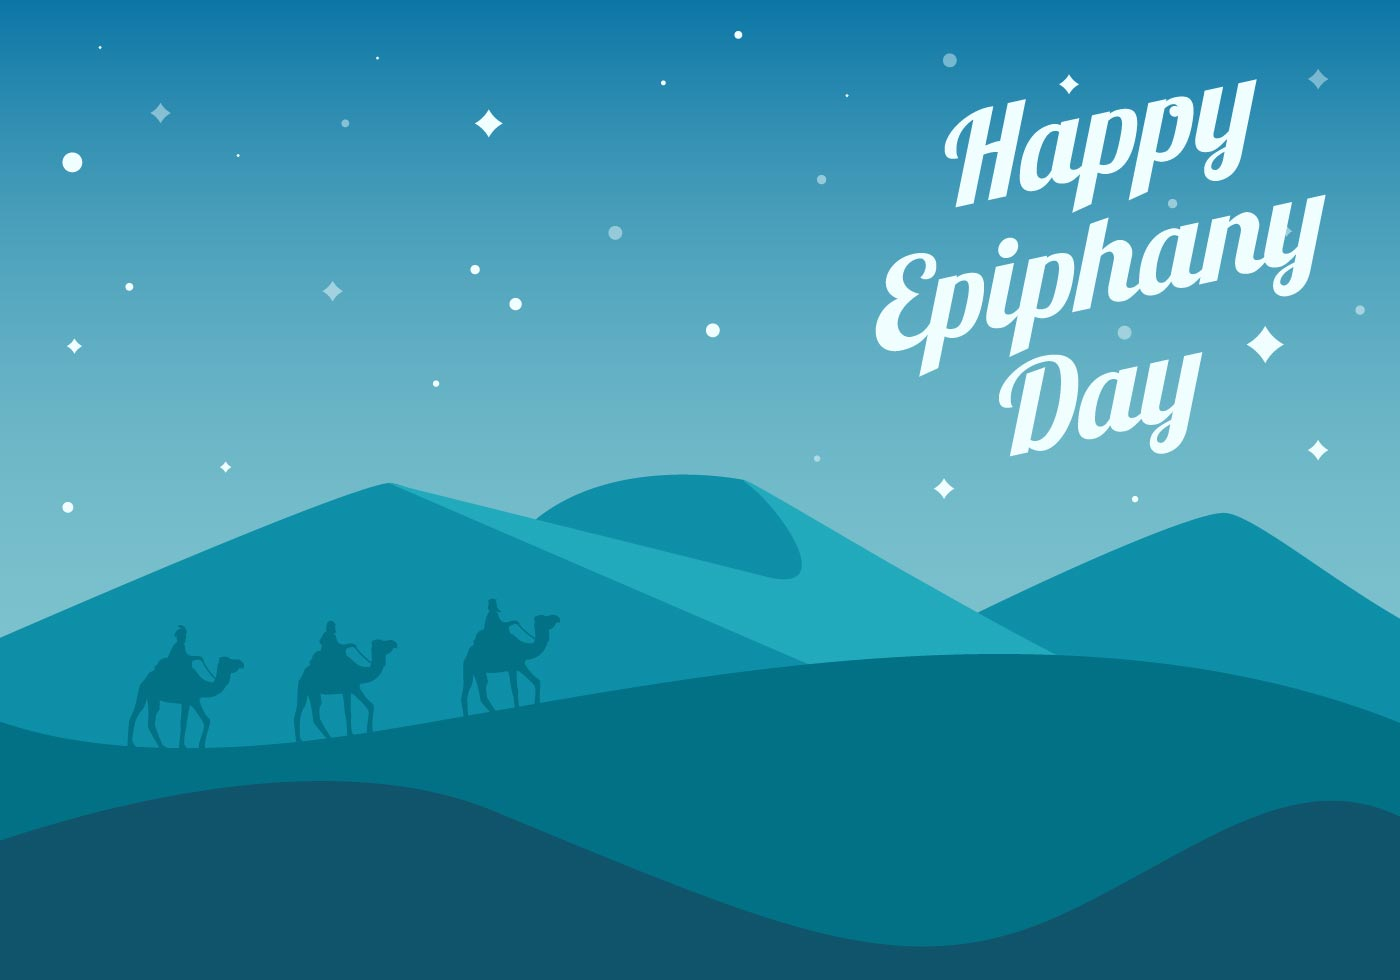 Free Happy Epiphany Day Background Vector Download Free